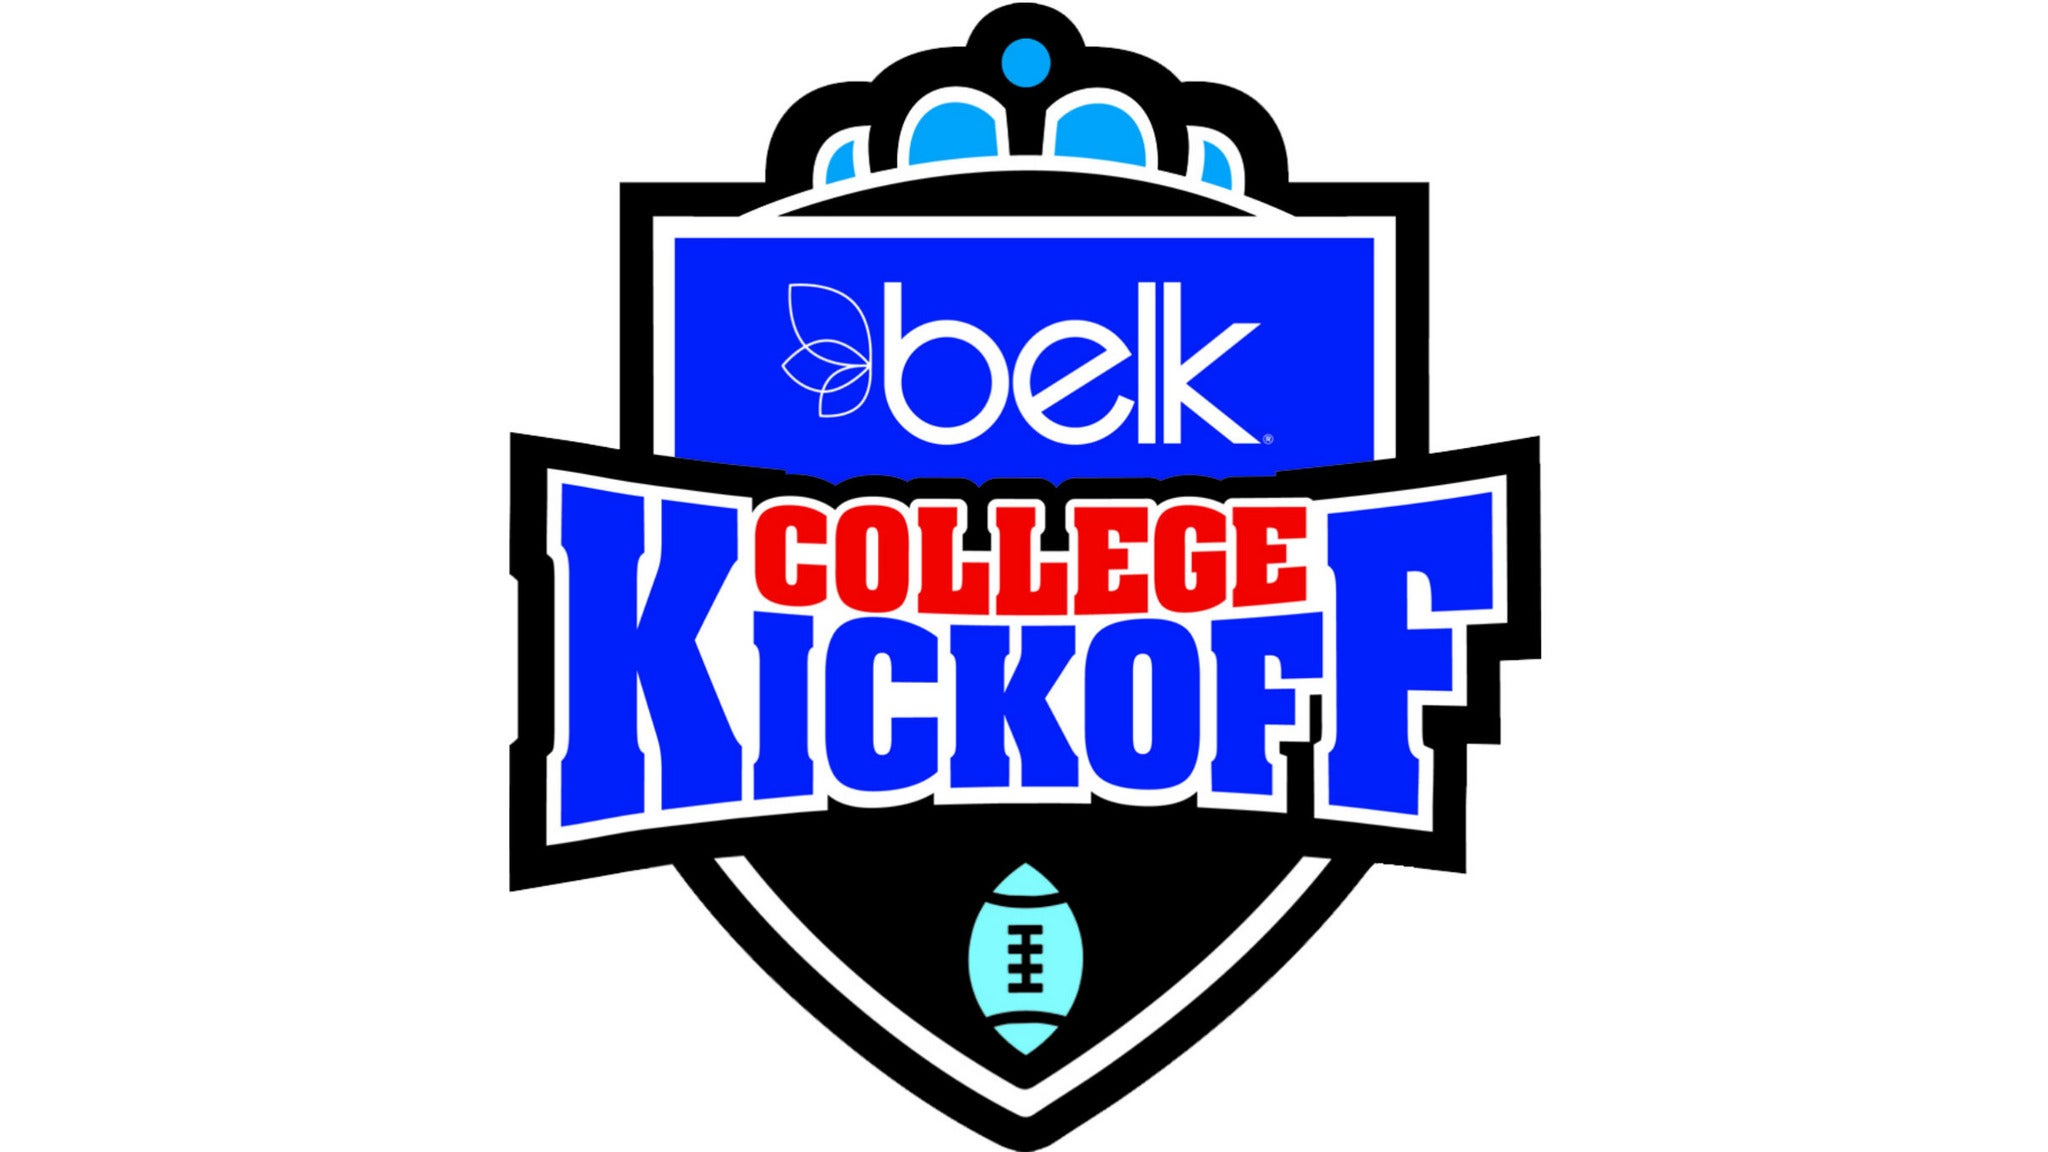 Belk College Kickoff Game at Bank of America Stadium